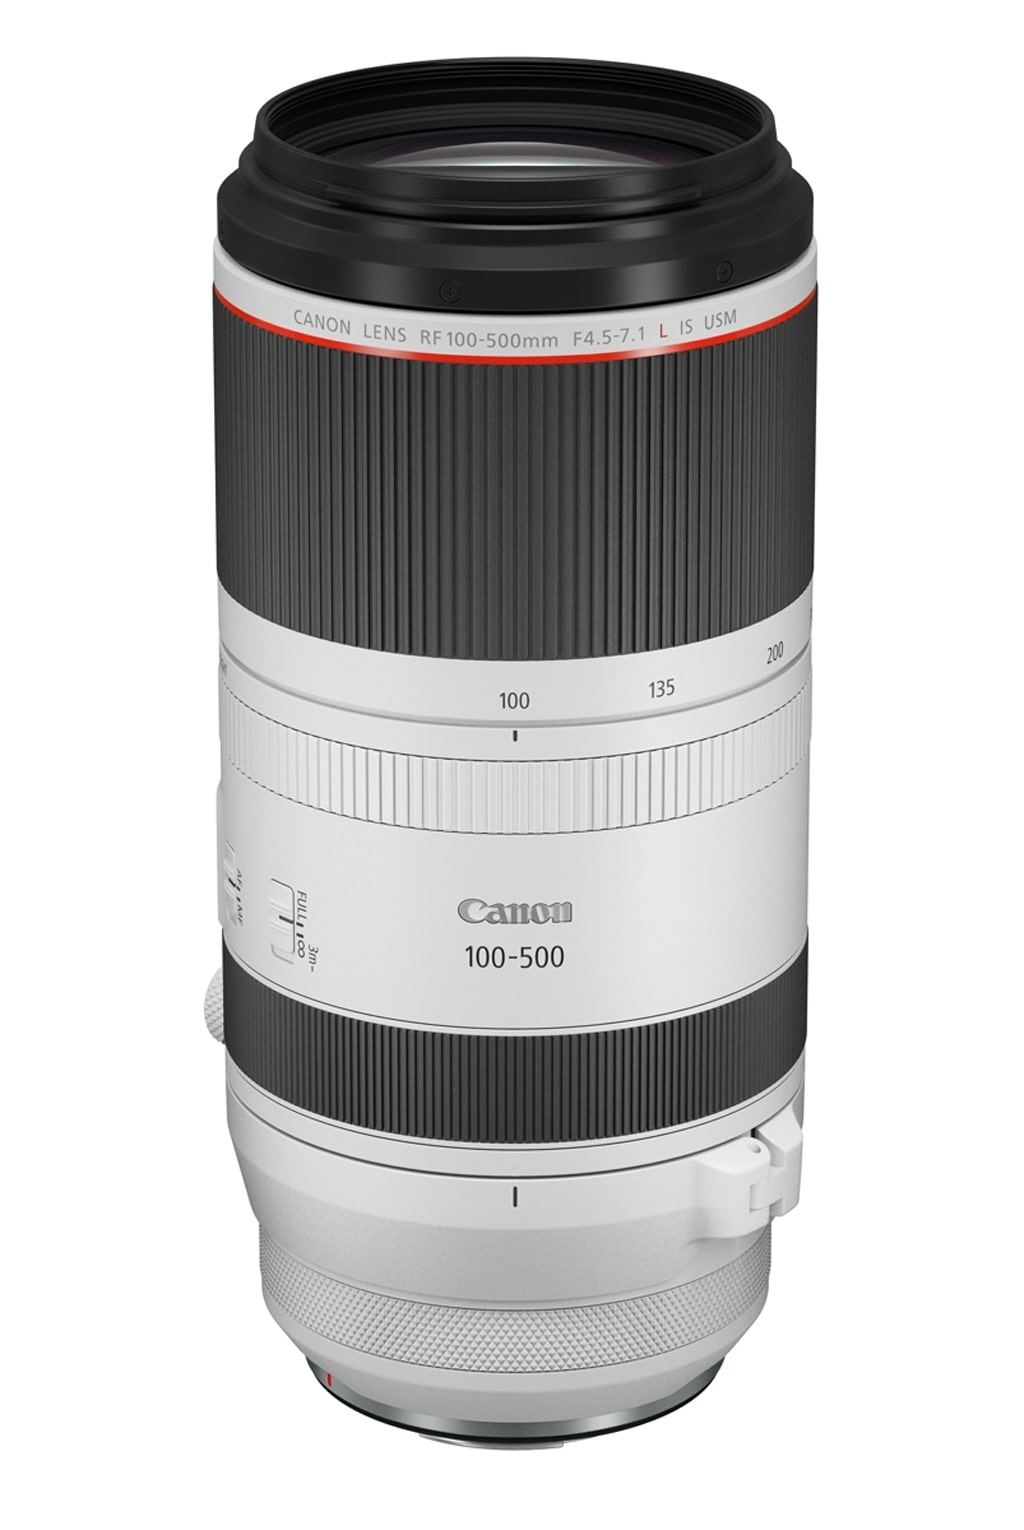 Canon RF 100-500mm 1:4,5-7.1 L IS USM